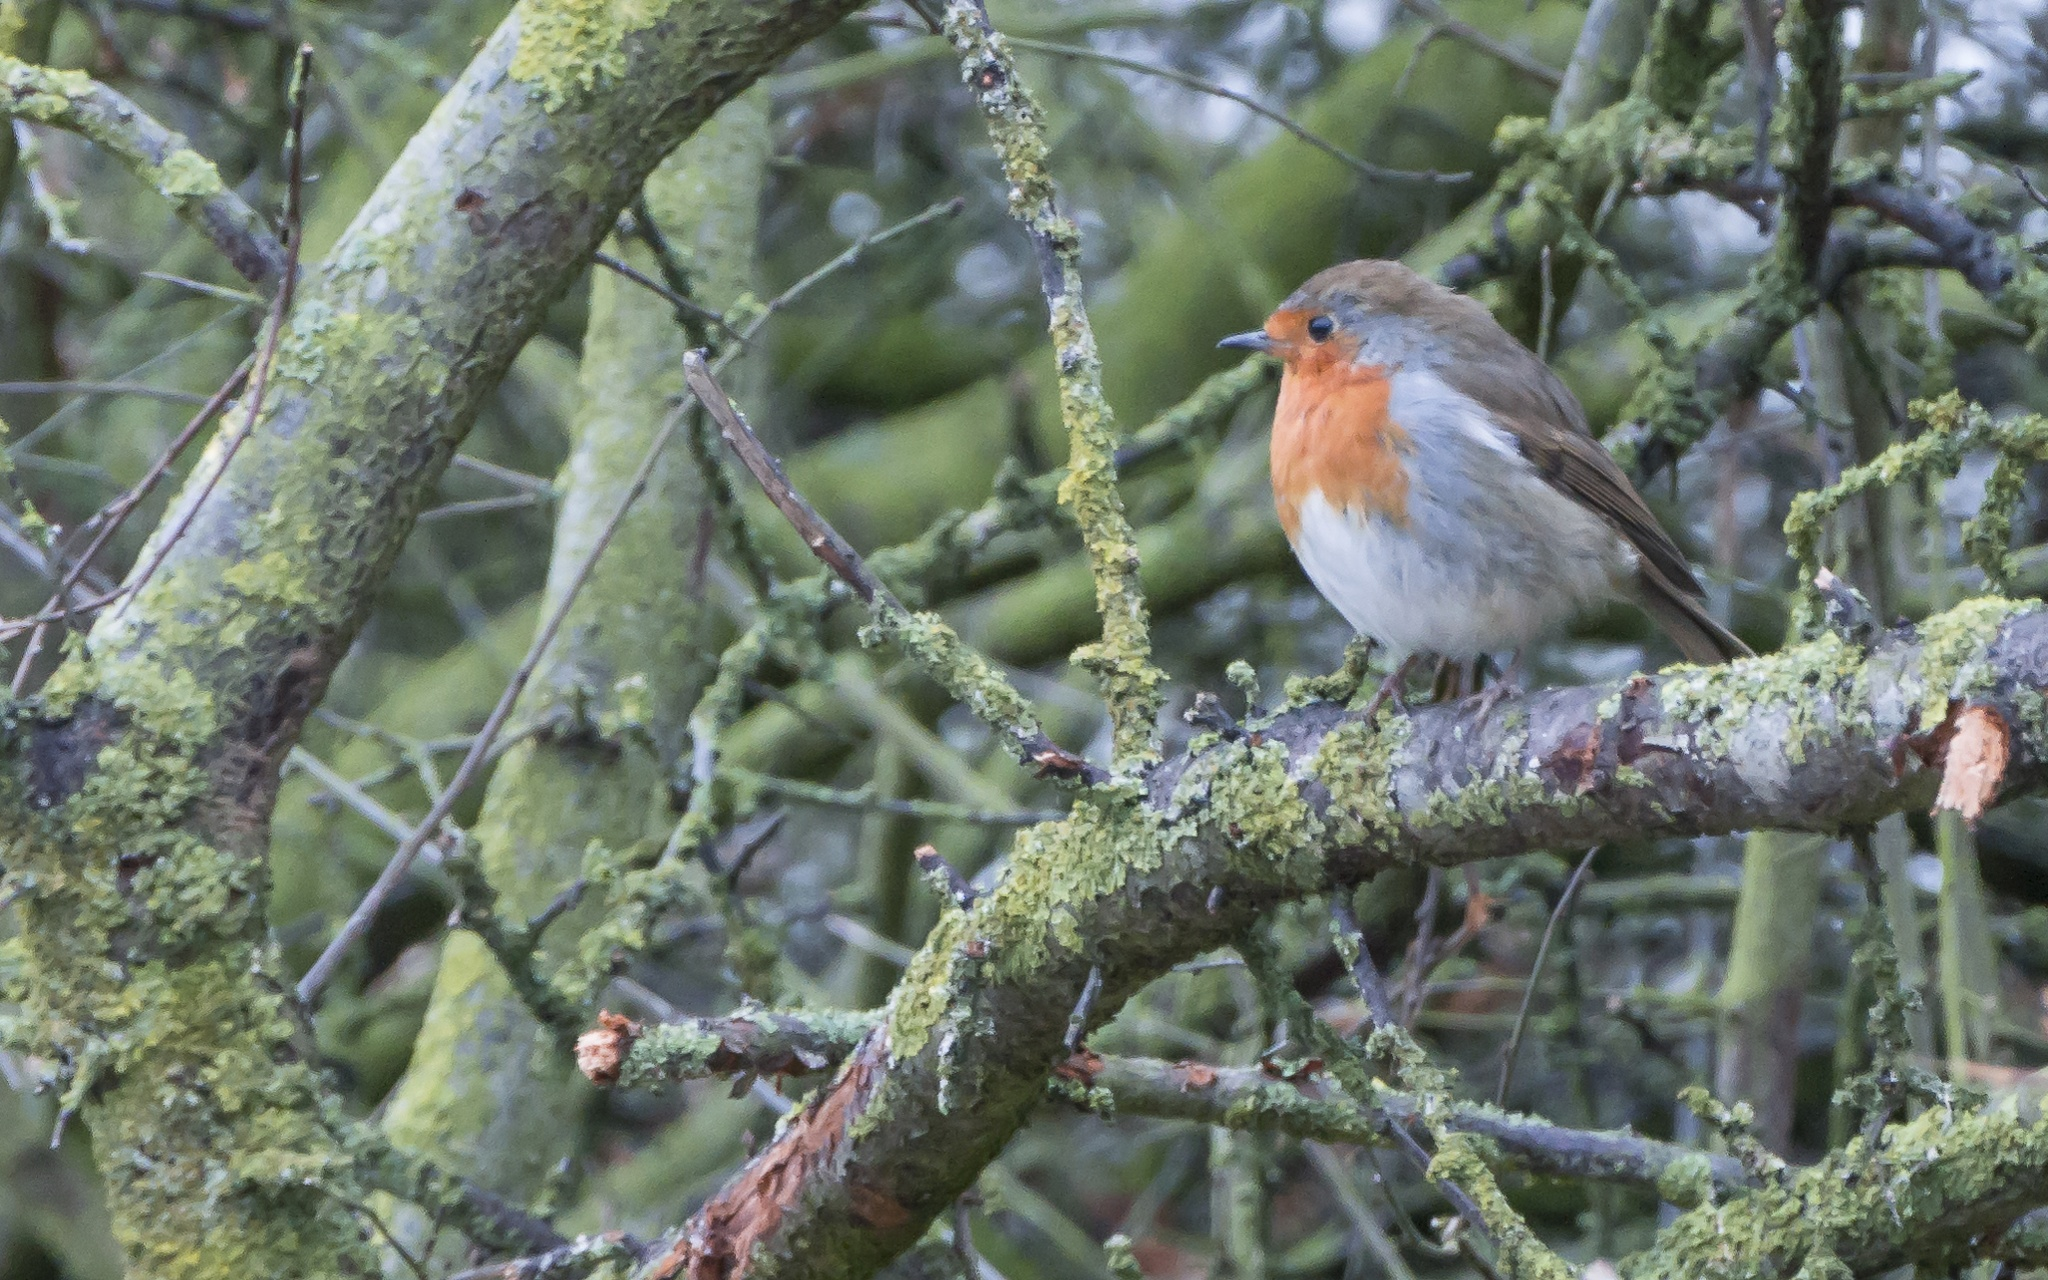 The Robin by kevin.wood.359126